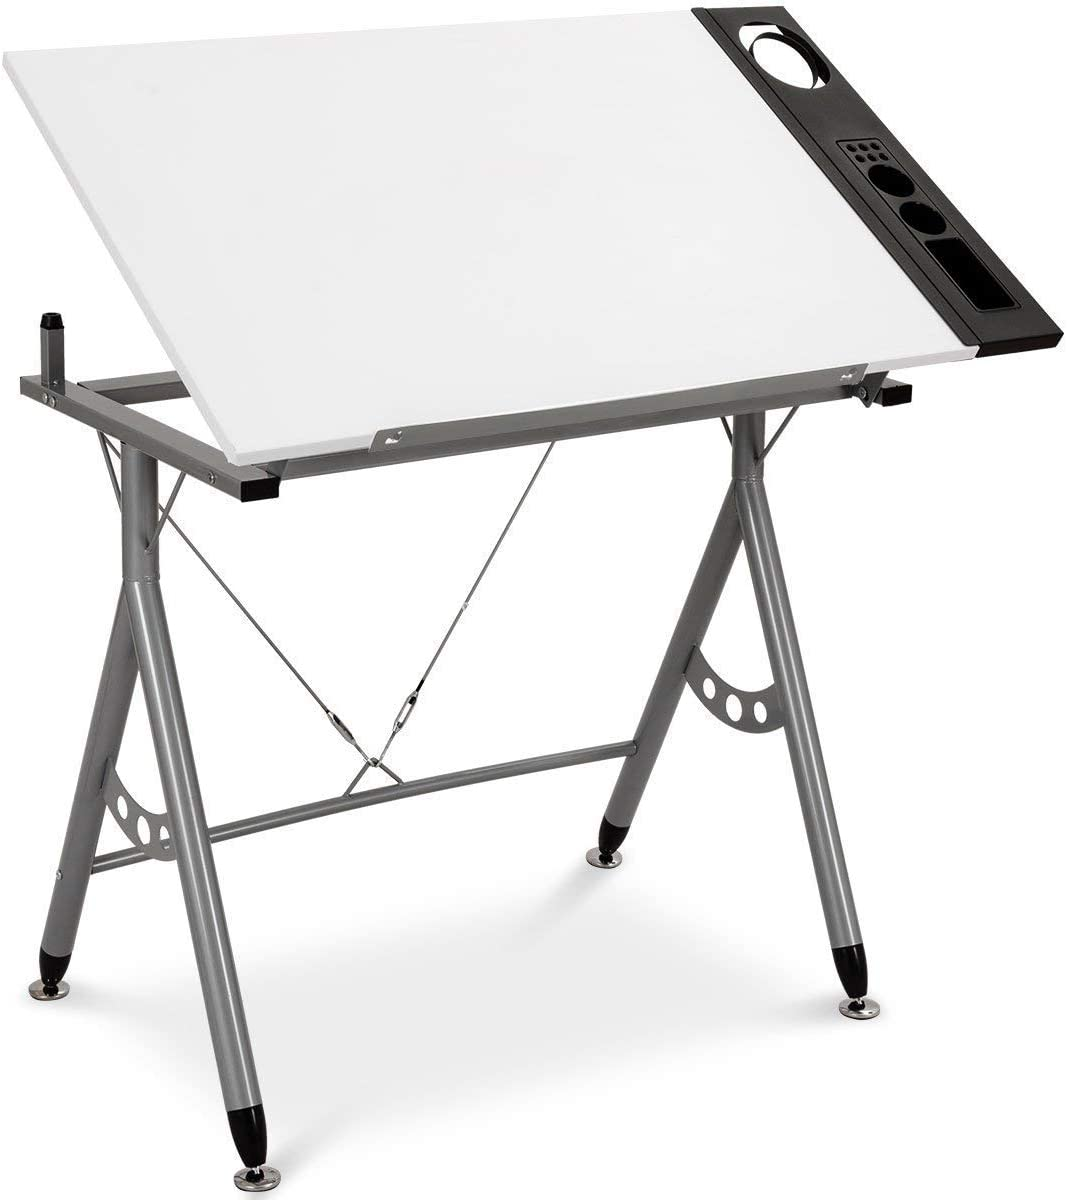 Tangkula Adjustable Drafting Table Art Craft Drawing Desk Folding with Side Tray White